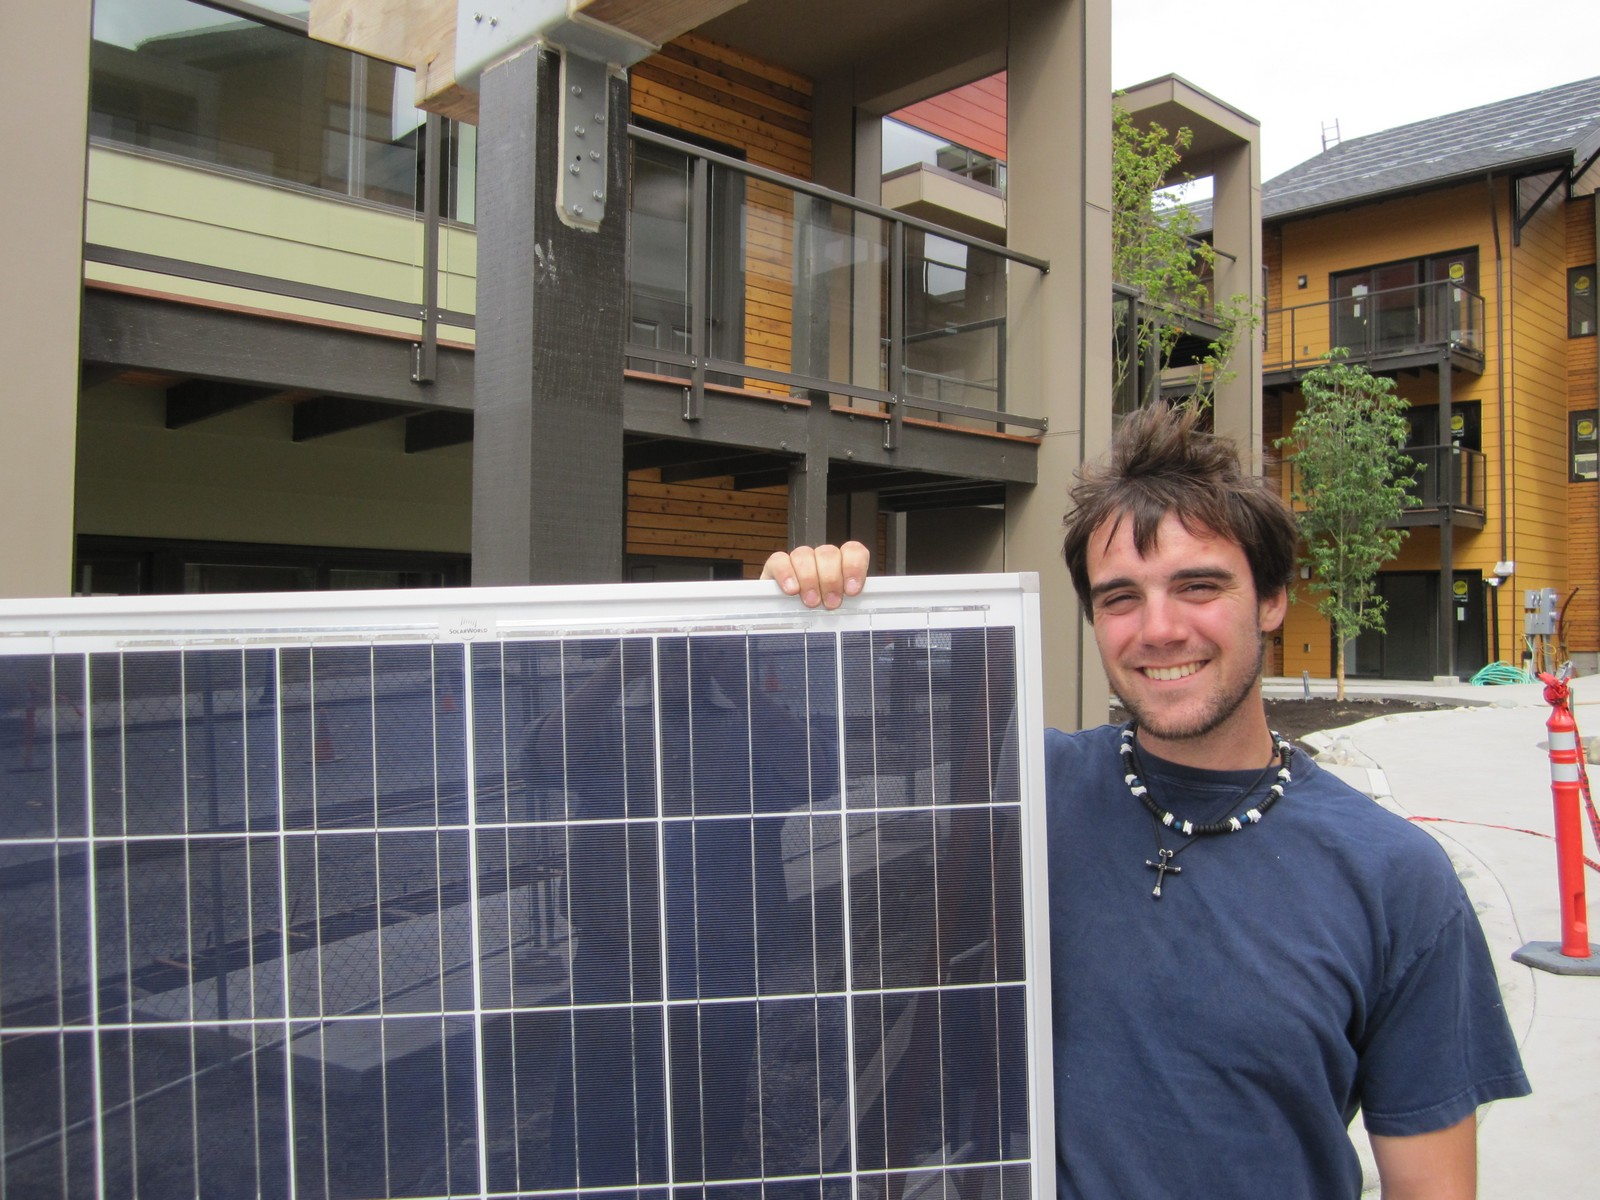 Each home includes a solar photovoltaic panel array adequate to offset the home's annual energy use.